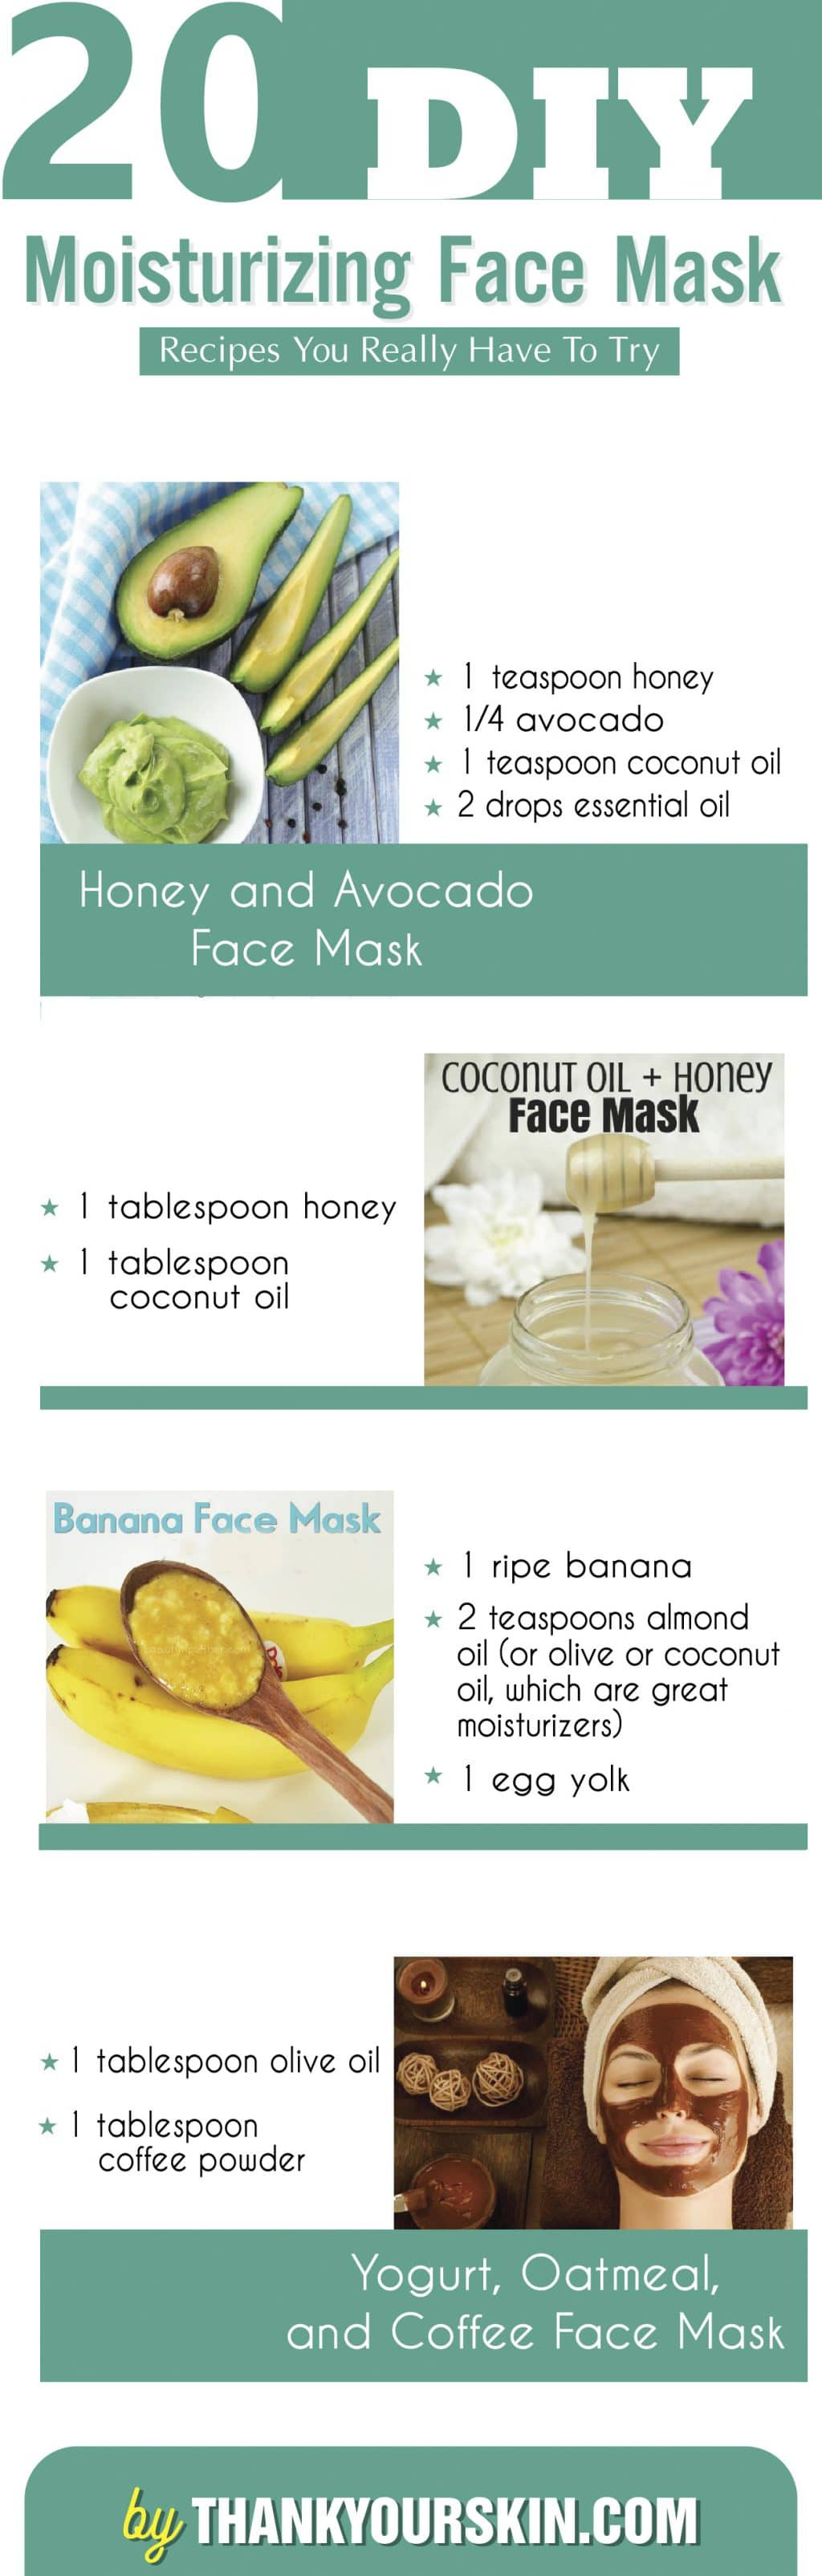 Moisturizing Face Mask DIY  20 DIY Moisturizing Face Mask Recipes You Really Have to Try